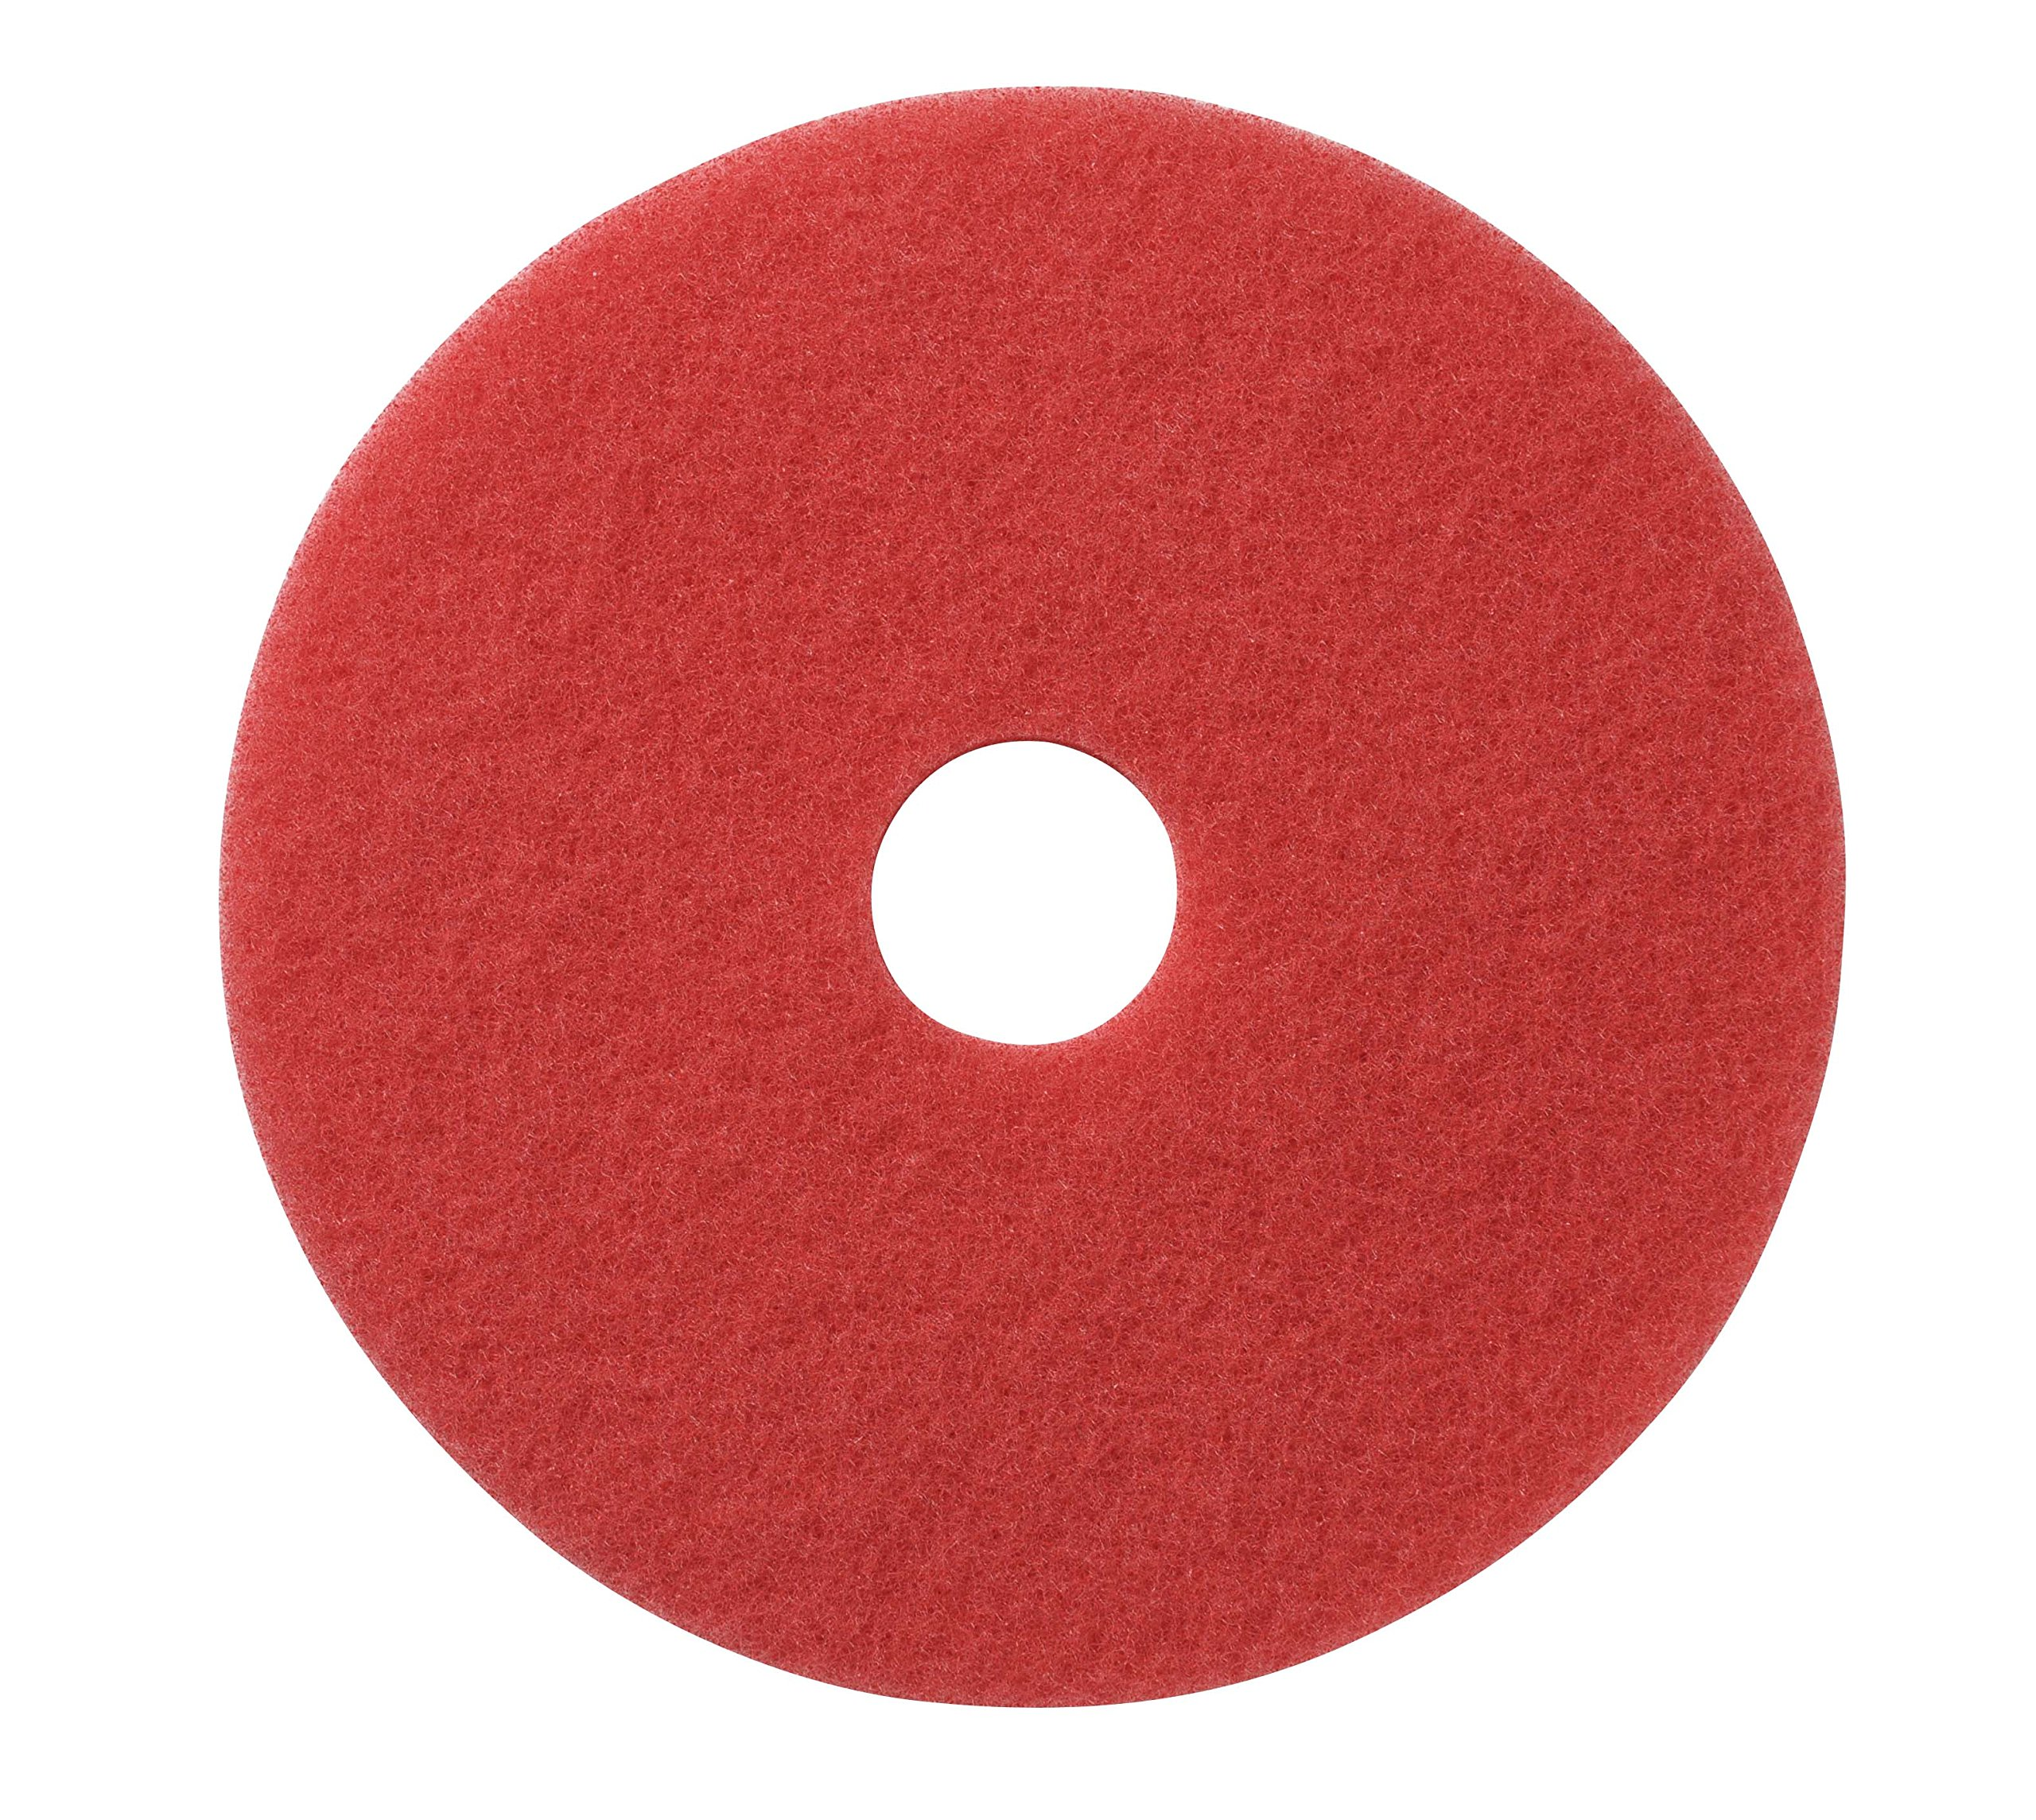 Glit/Microtron 404413 Daily Cleaning and Buffing Pad, 13'', Red (Pack of 5) by Glit / Microtron